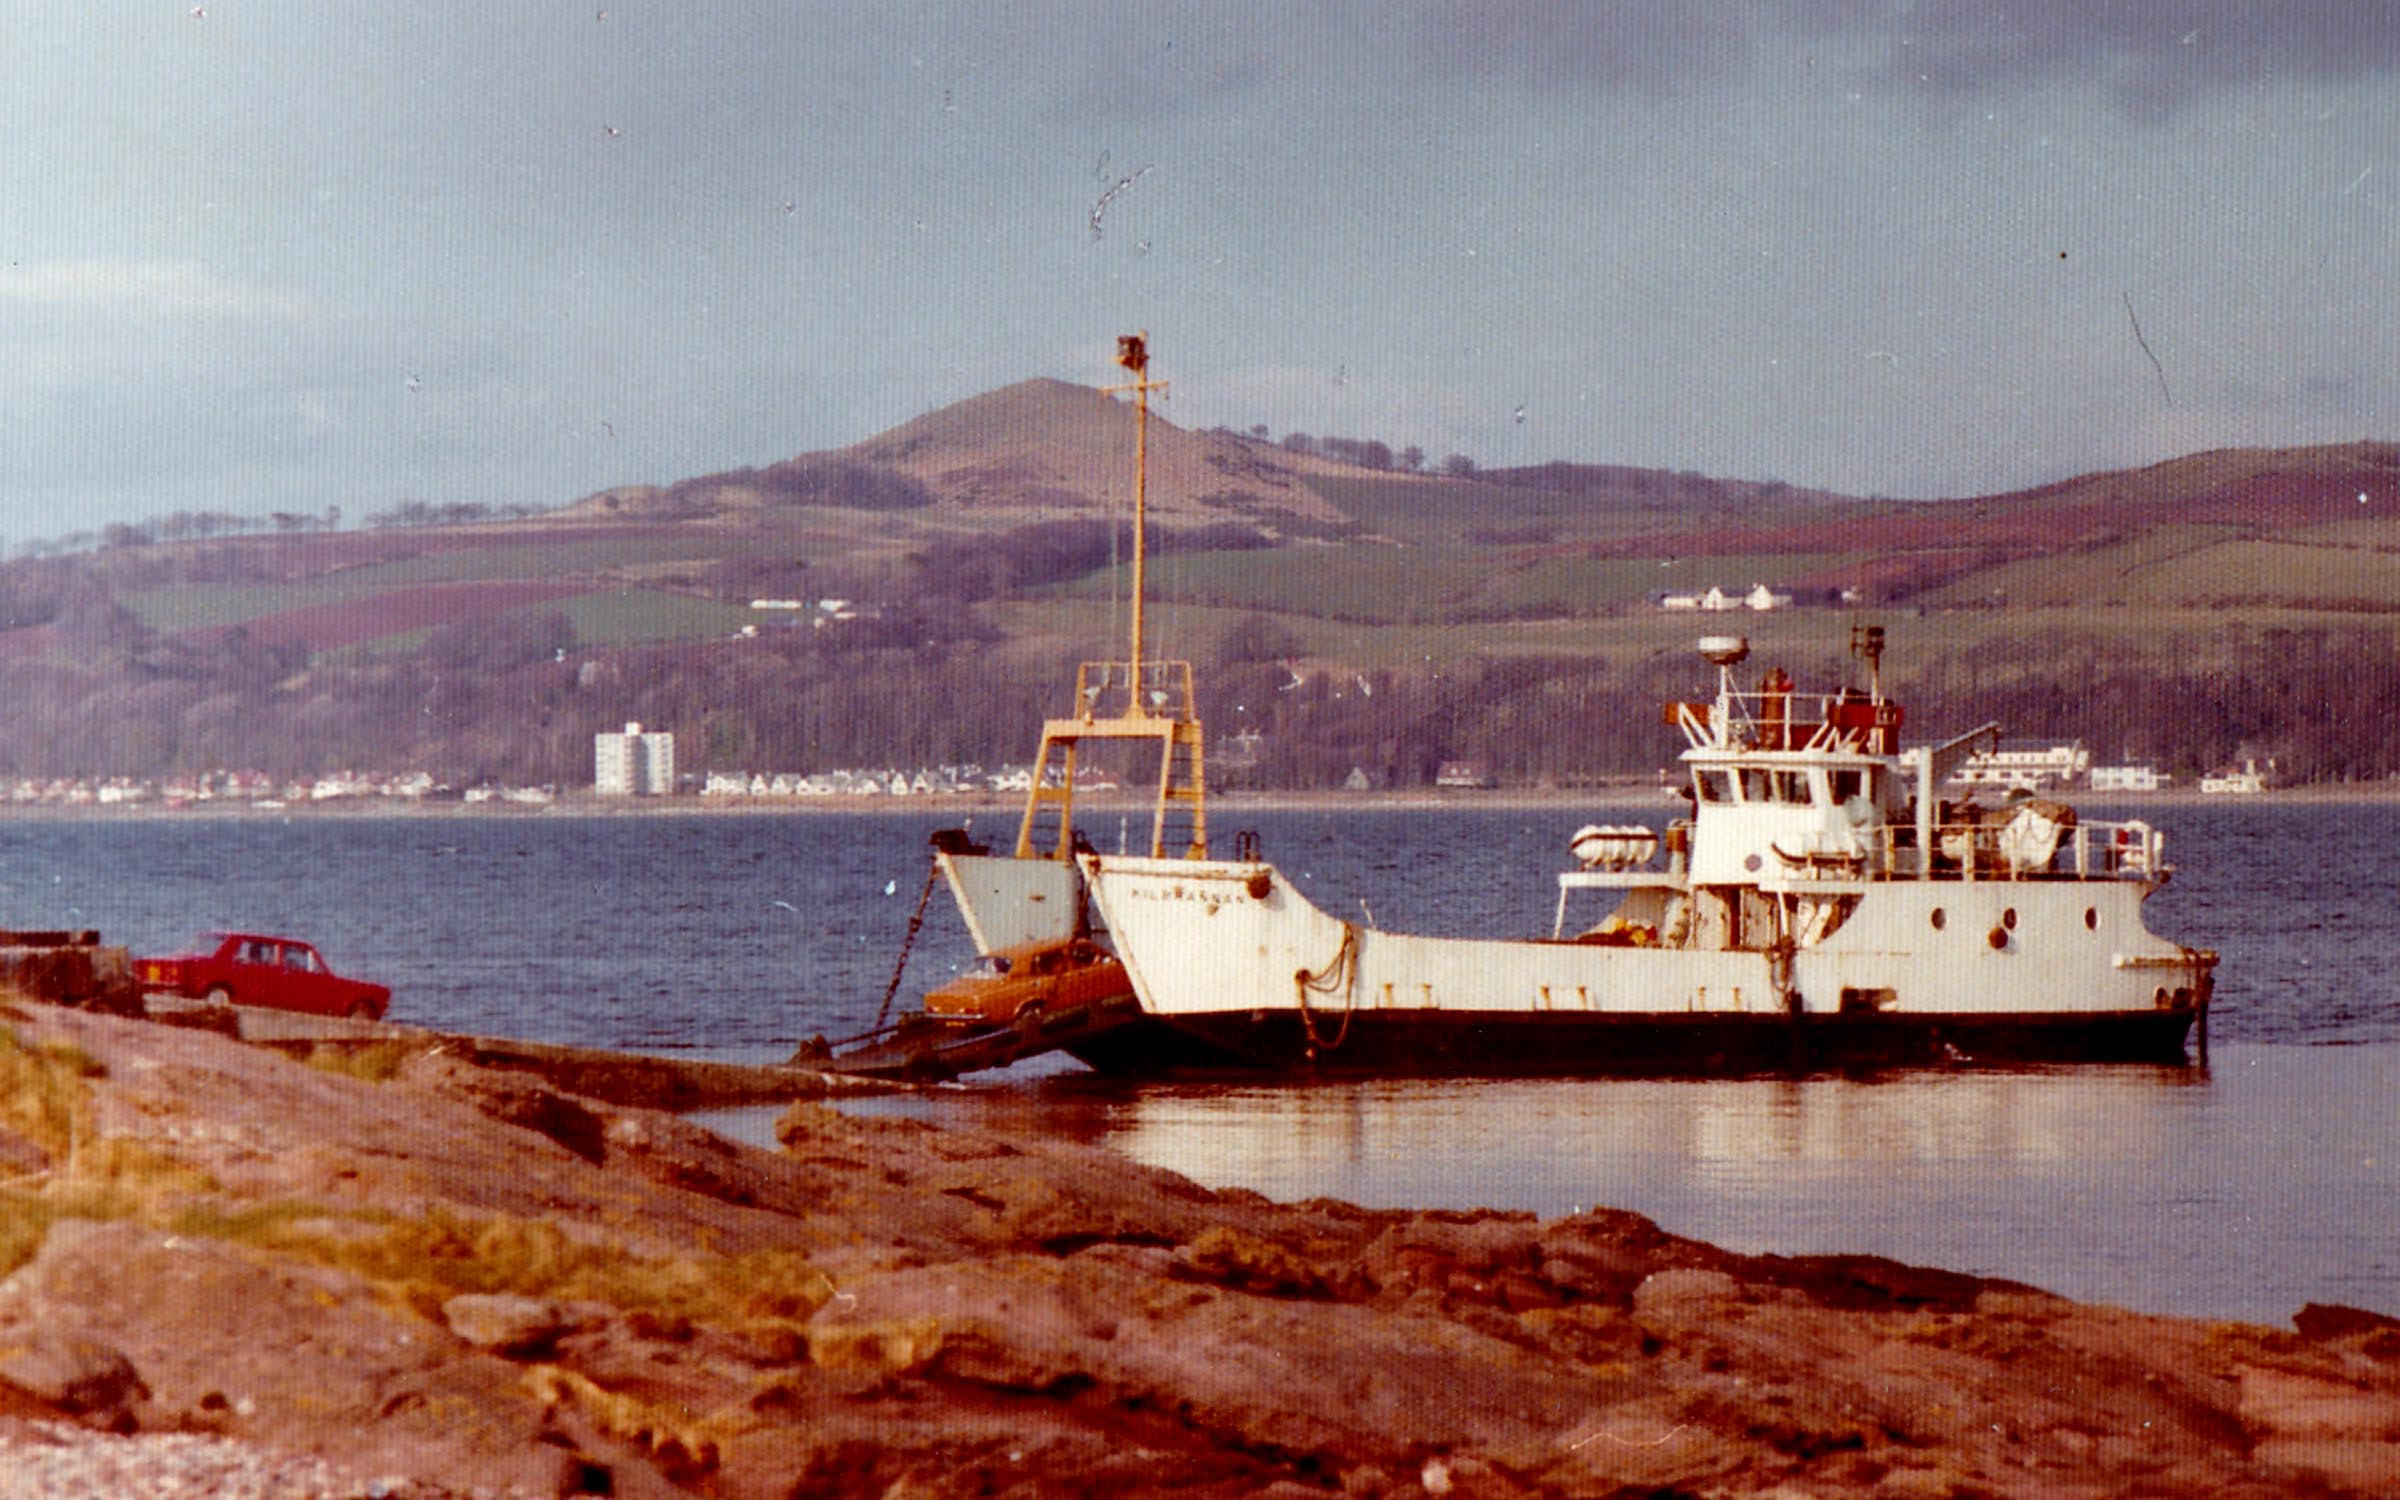 Kilbrannan at Cumbrae Slip (Jim Aikman Smith)